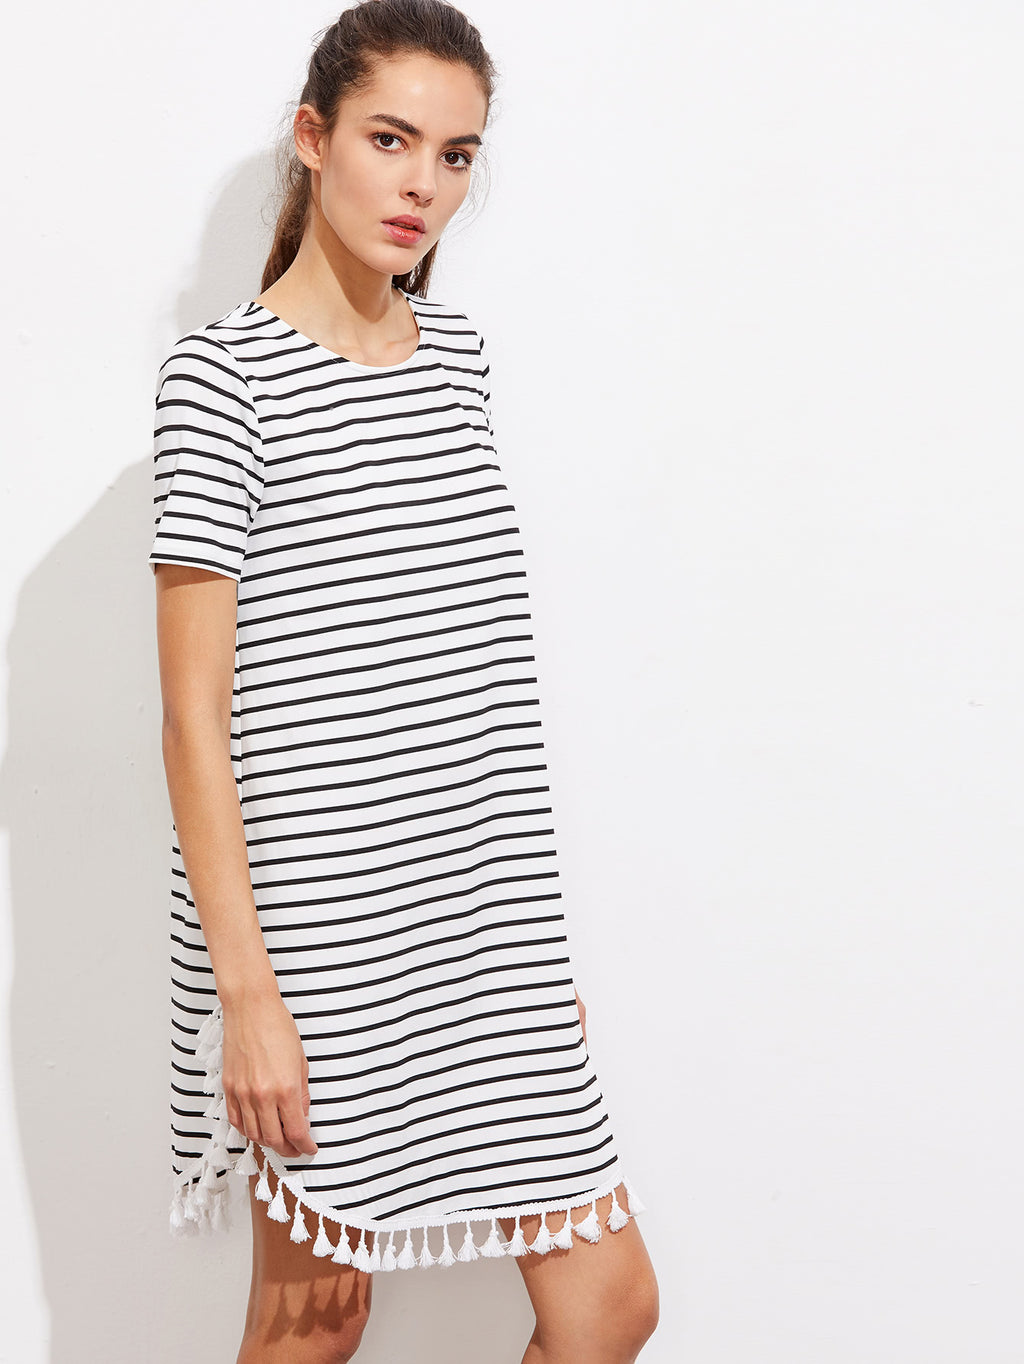 Tassel Trim Dolphin Hem Striped Tee Dress, Dress For Women